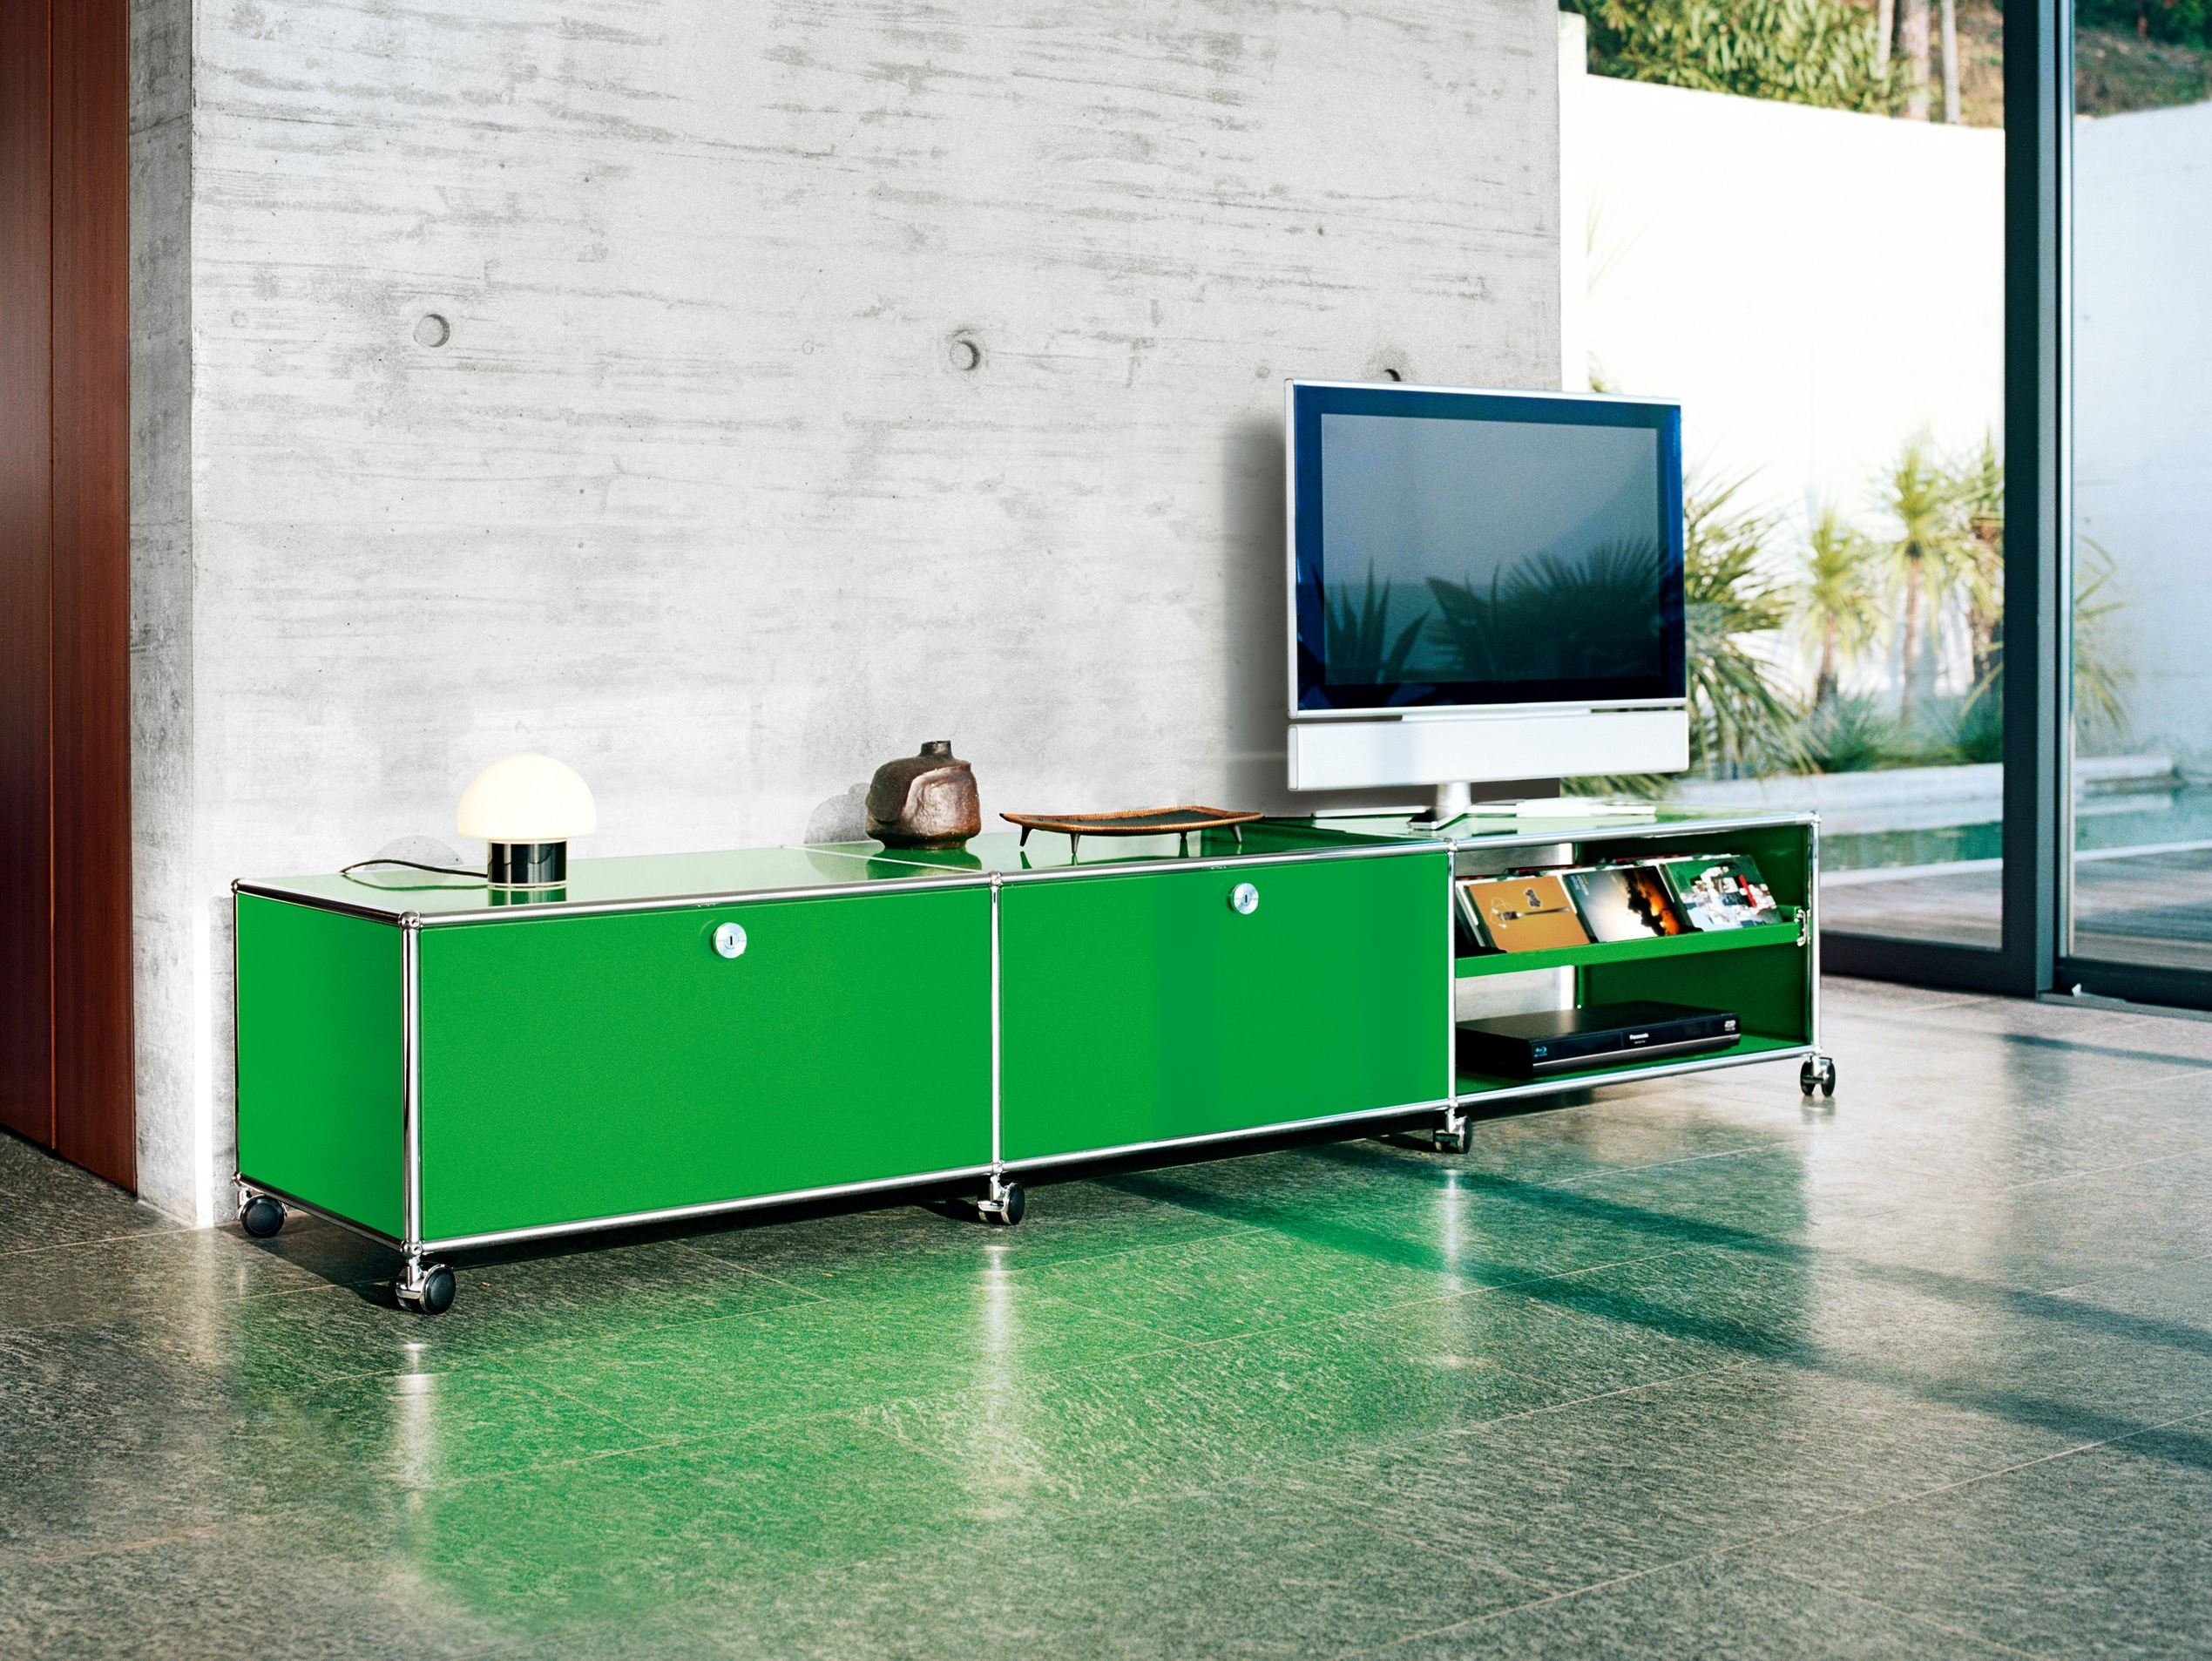 usm haller lowboard as media unit sideboard by usm modular furniture design fritz haller. Black Bedroom Furniture Sets. Home Design Ideas